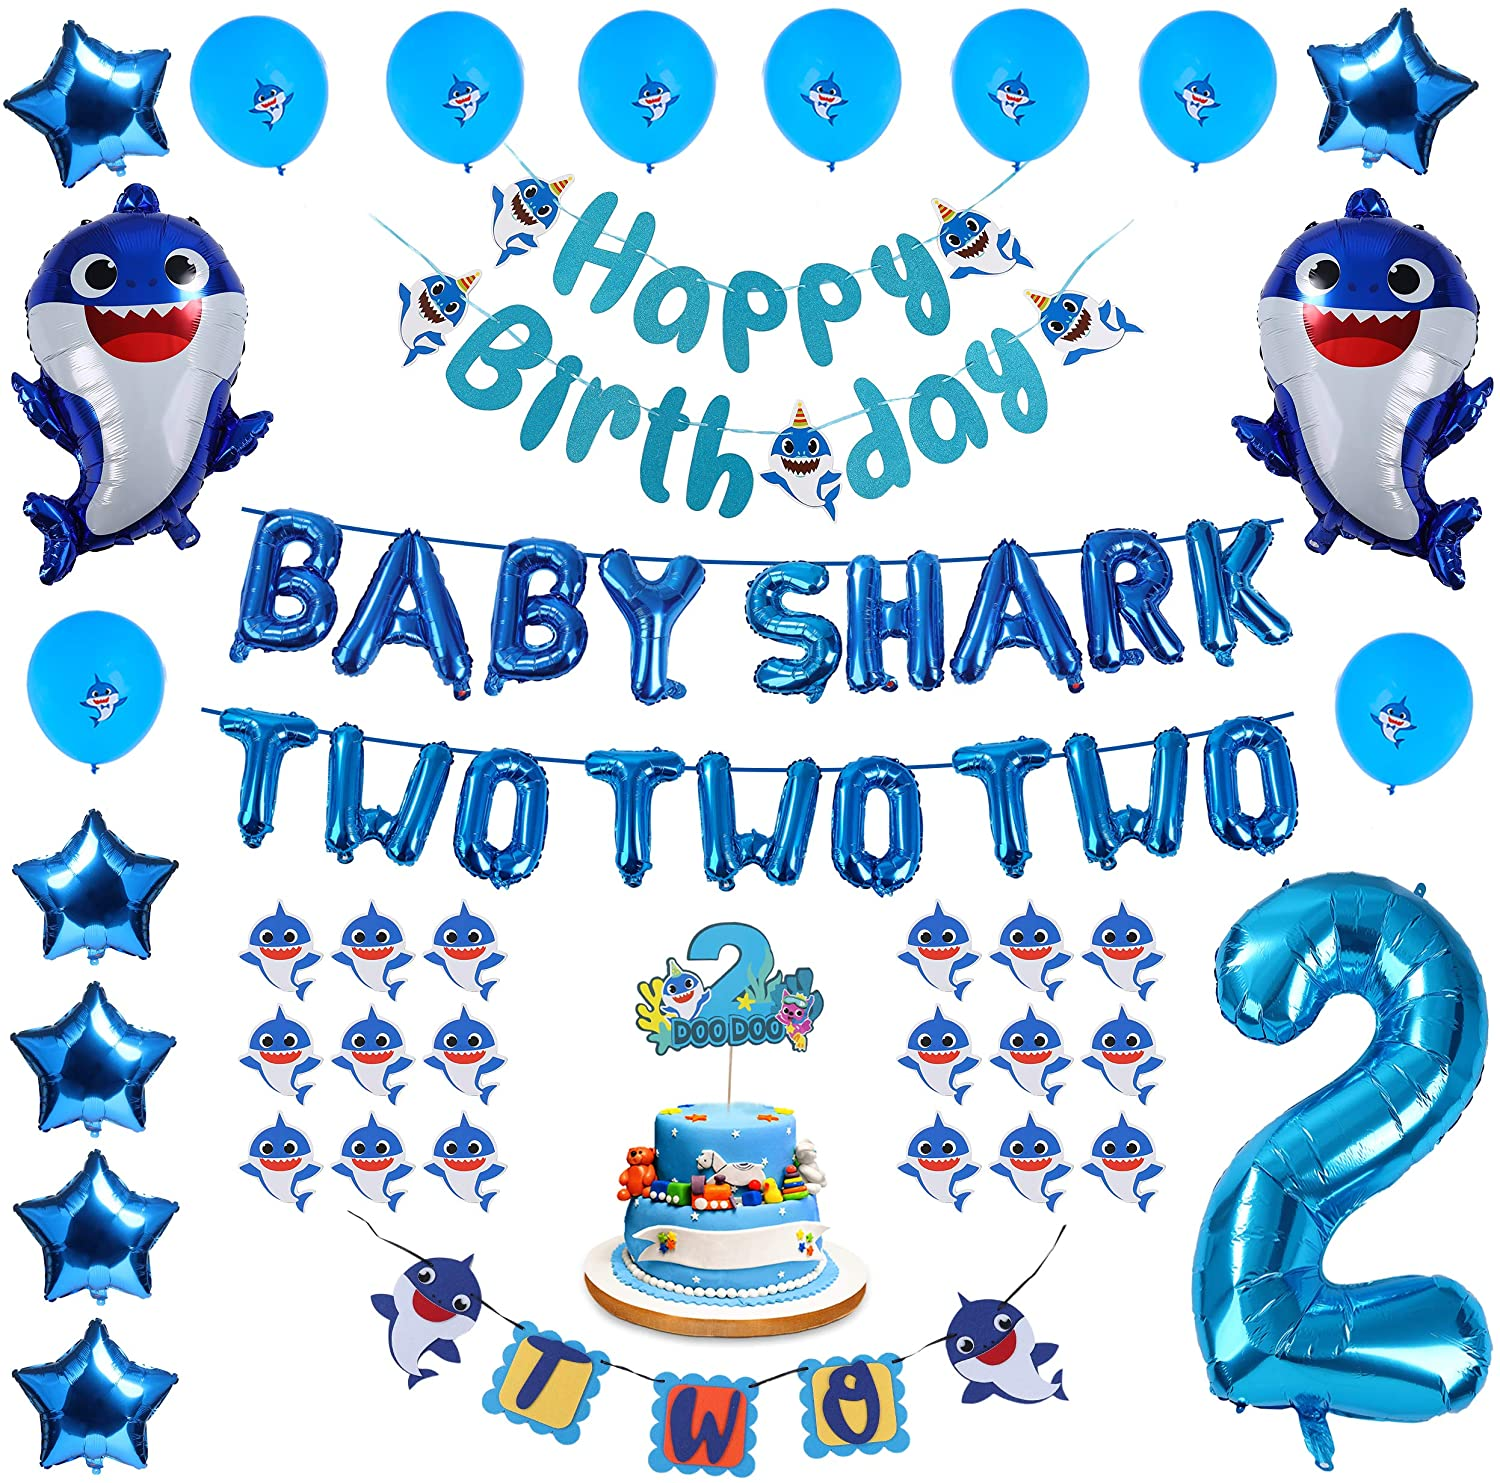 2nd Birthday Decorations Baby Shark Theme For Boy Blue Baby Shark Two And Number 2 Foil Balloons 2 Doo Cake Topper Happy Birthday And Two Banner Balloons Cupcake Toppers Walmart Com Walmart Com